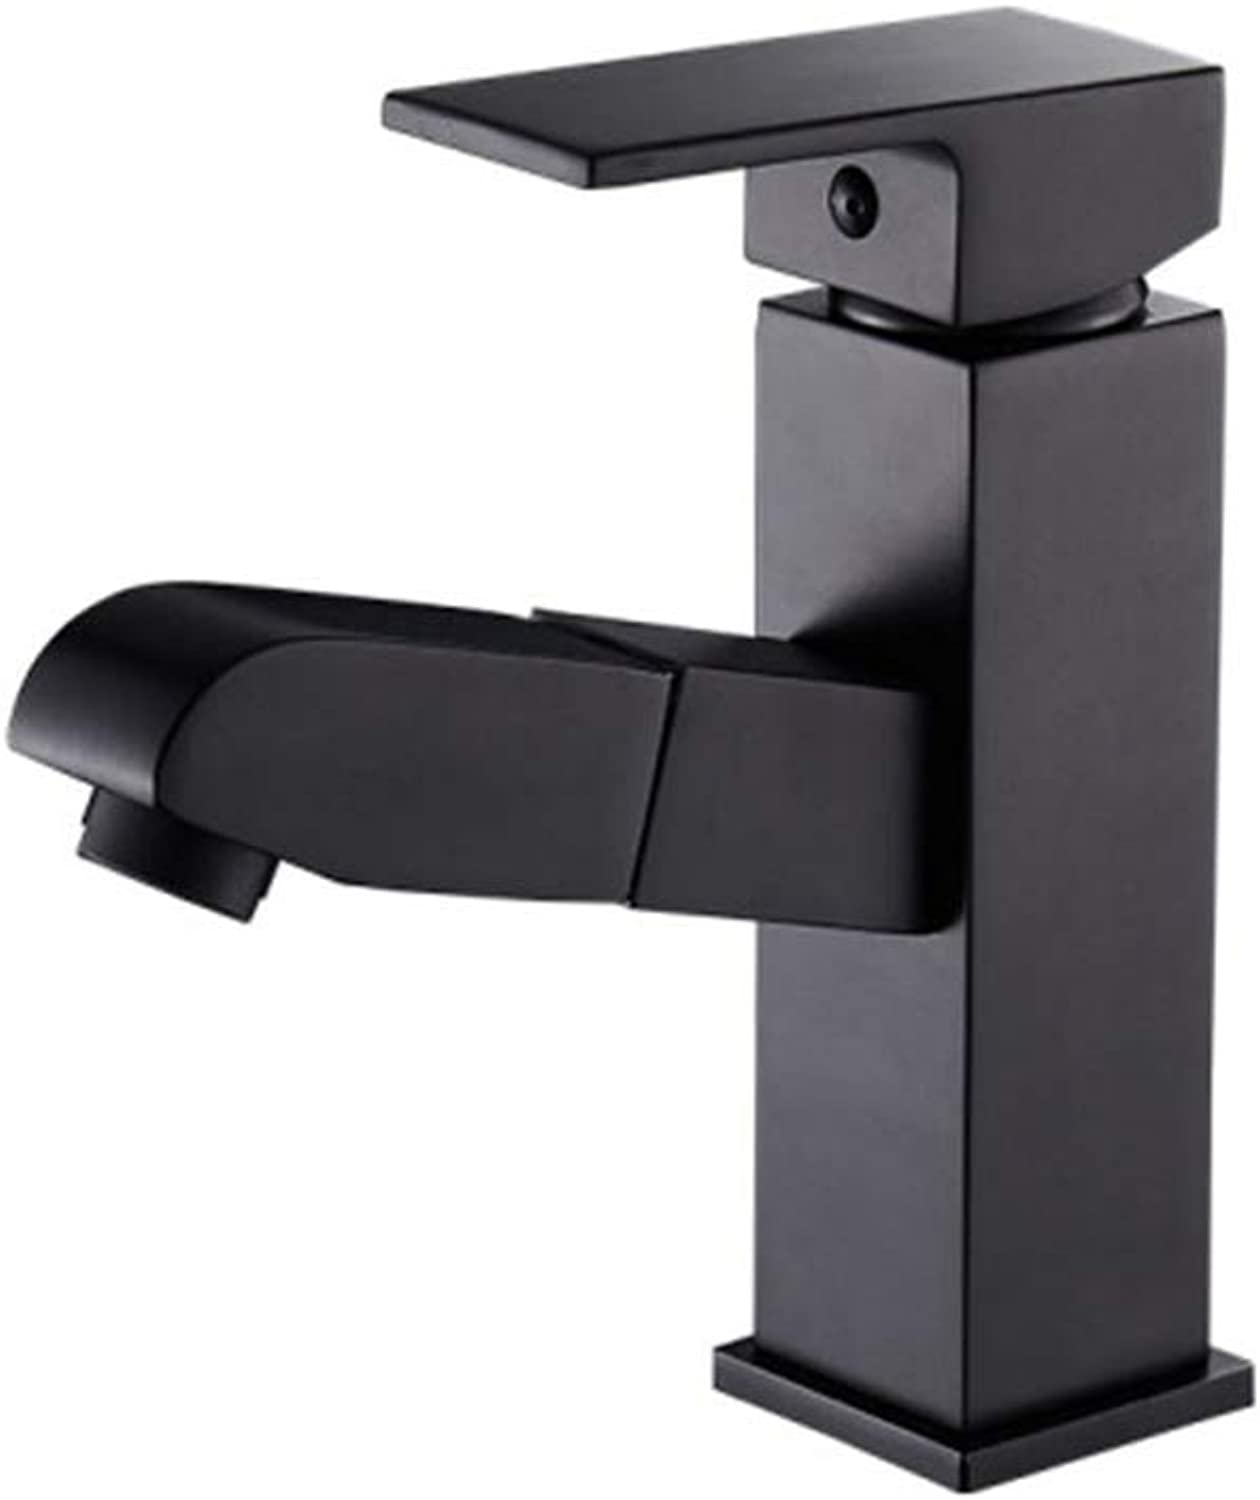 Kitchen Taps Faucet Modern Kitchen Sink Taps Stainless Steelbathroom Draw Faucet Cold and Heat Expansion Copper Bathroom Face Pot Faucet Washing Basin Faucet Black Toilet Faucet